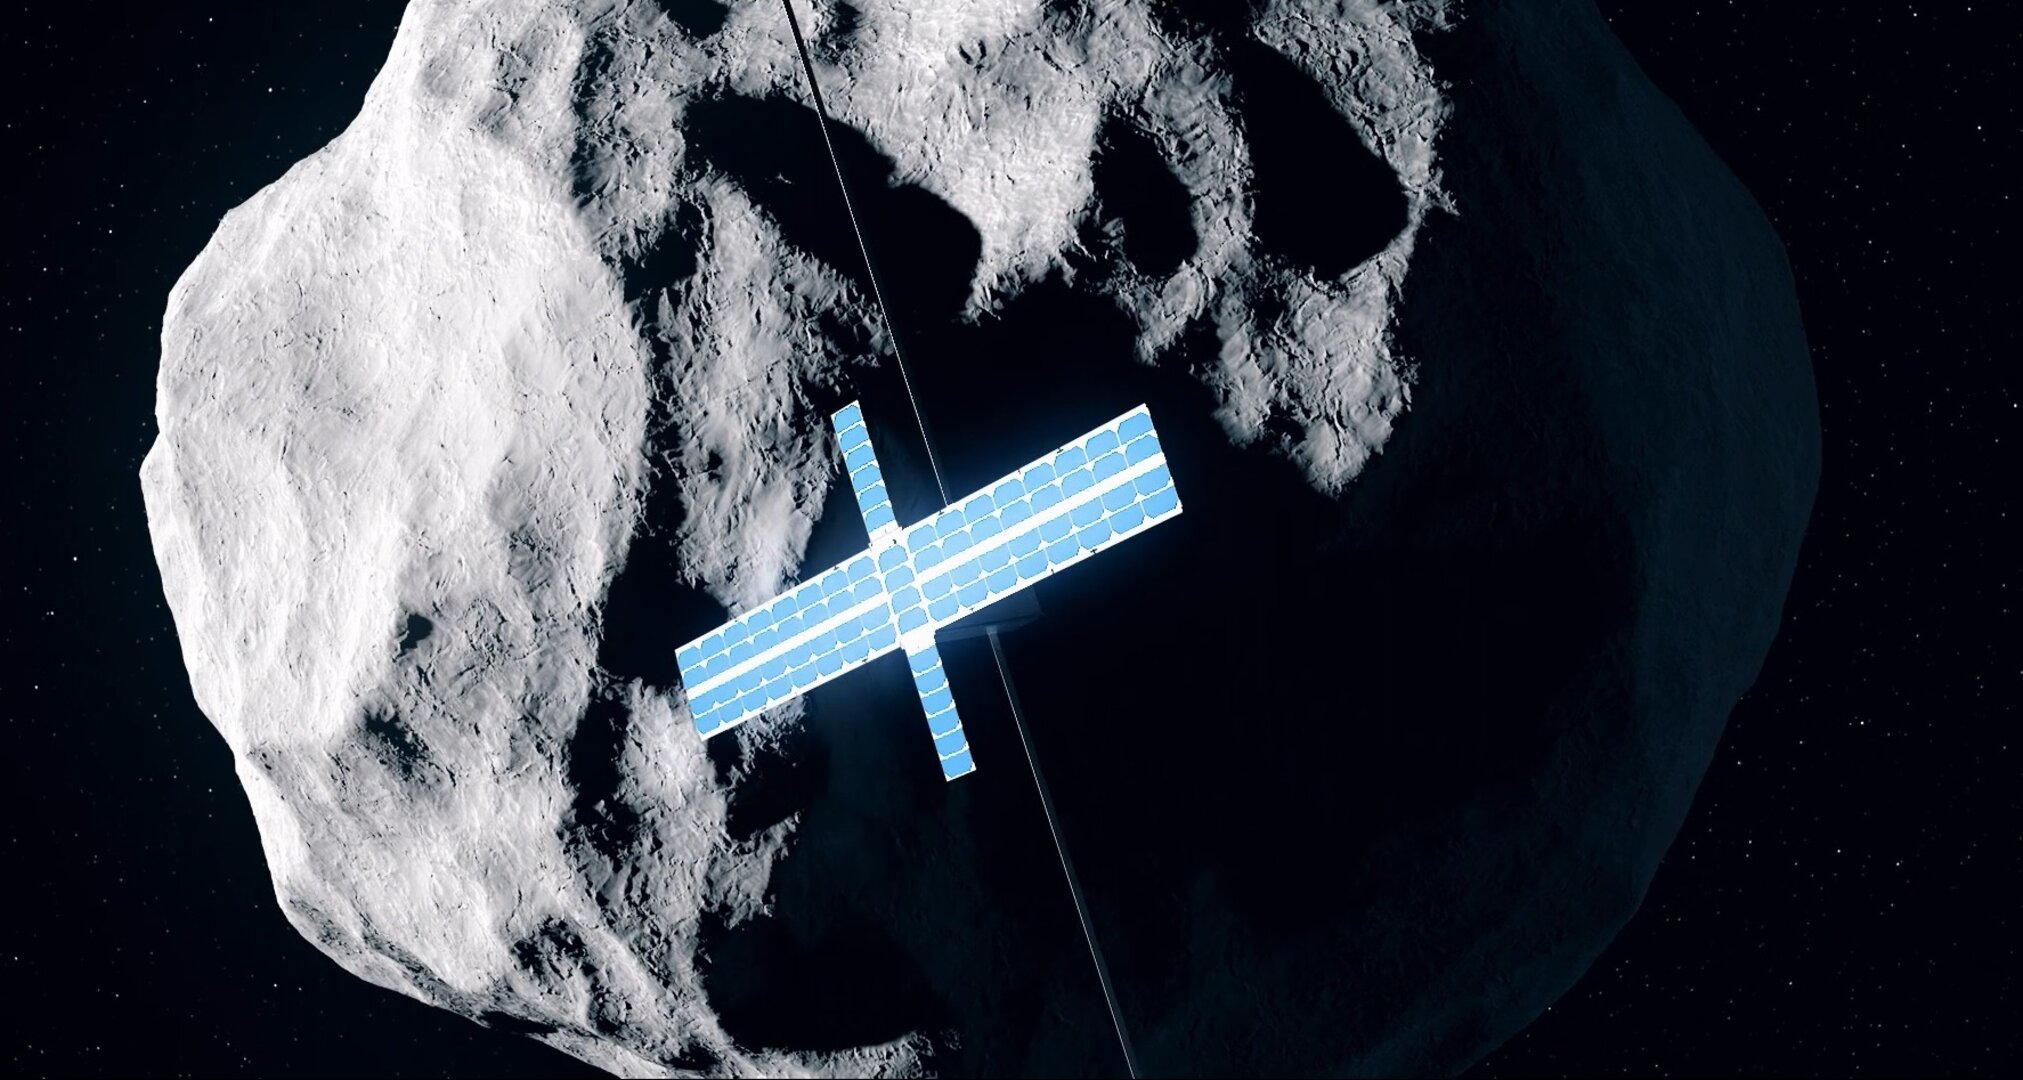 CubeSat approaching asteroid